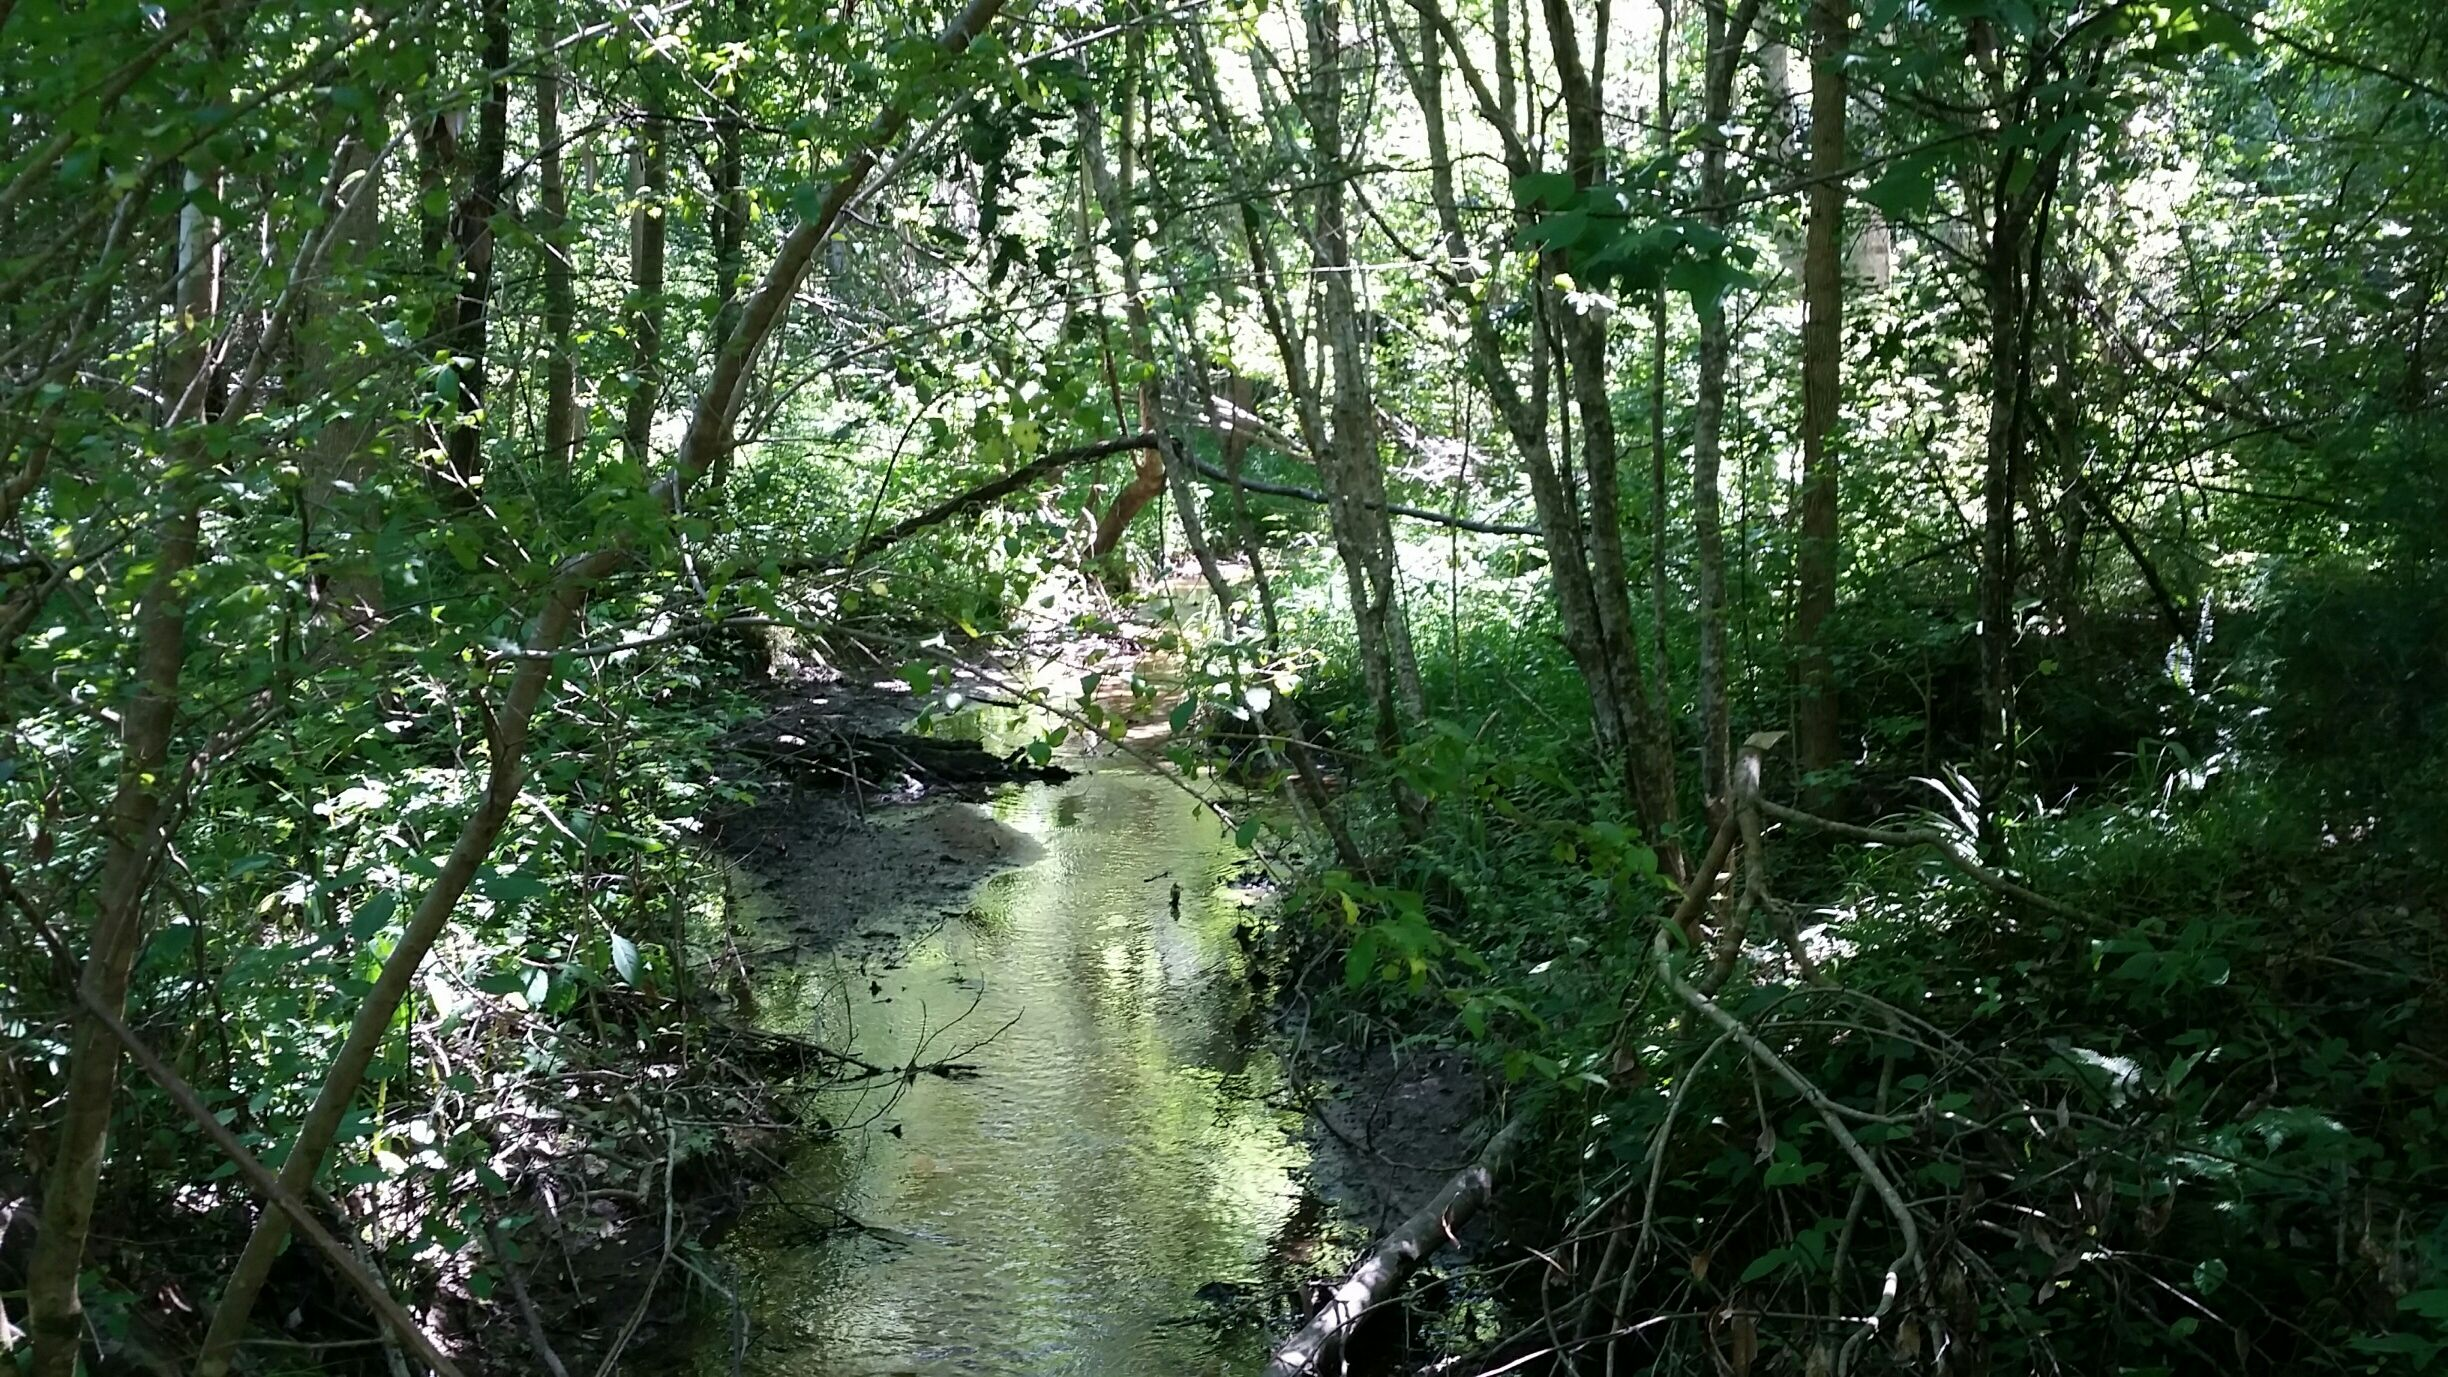 A view of the main creek that crosses the property.  There are other small creeks too